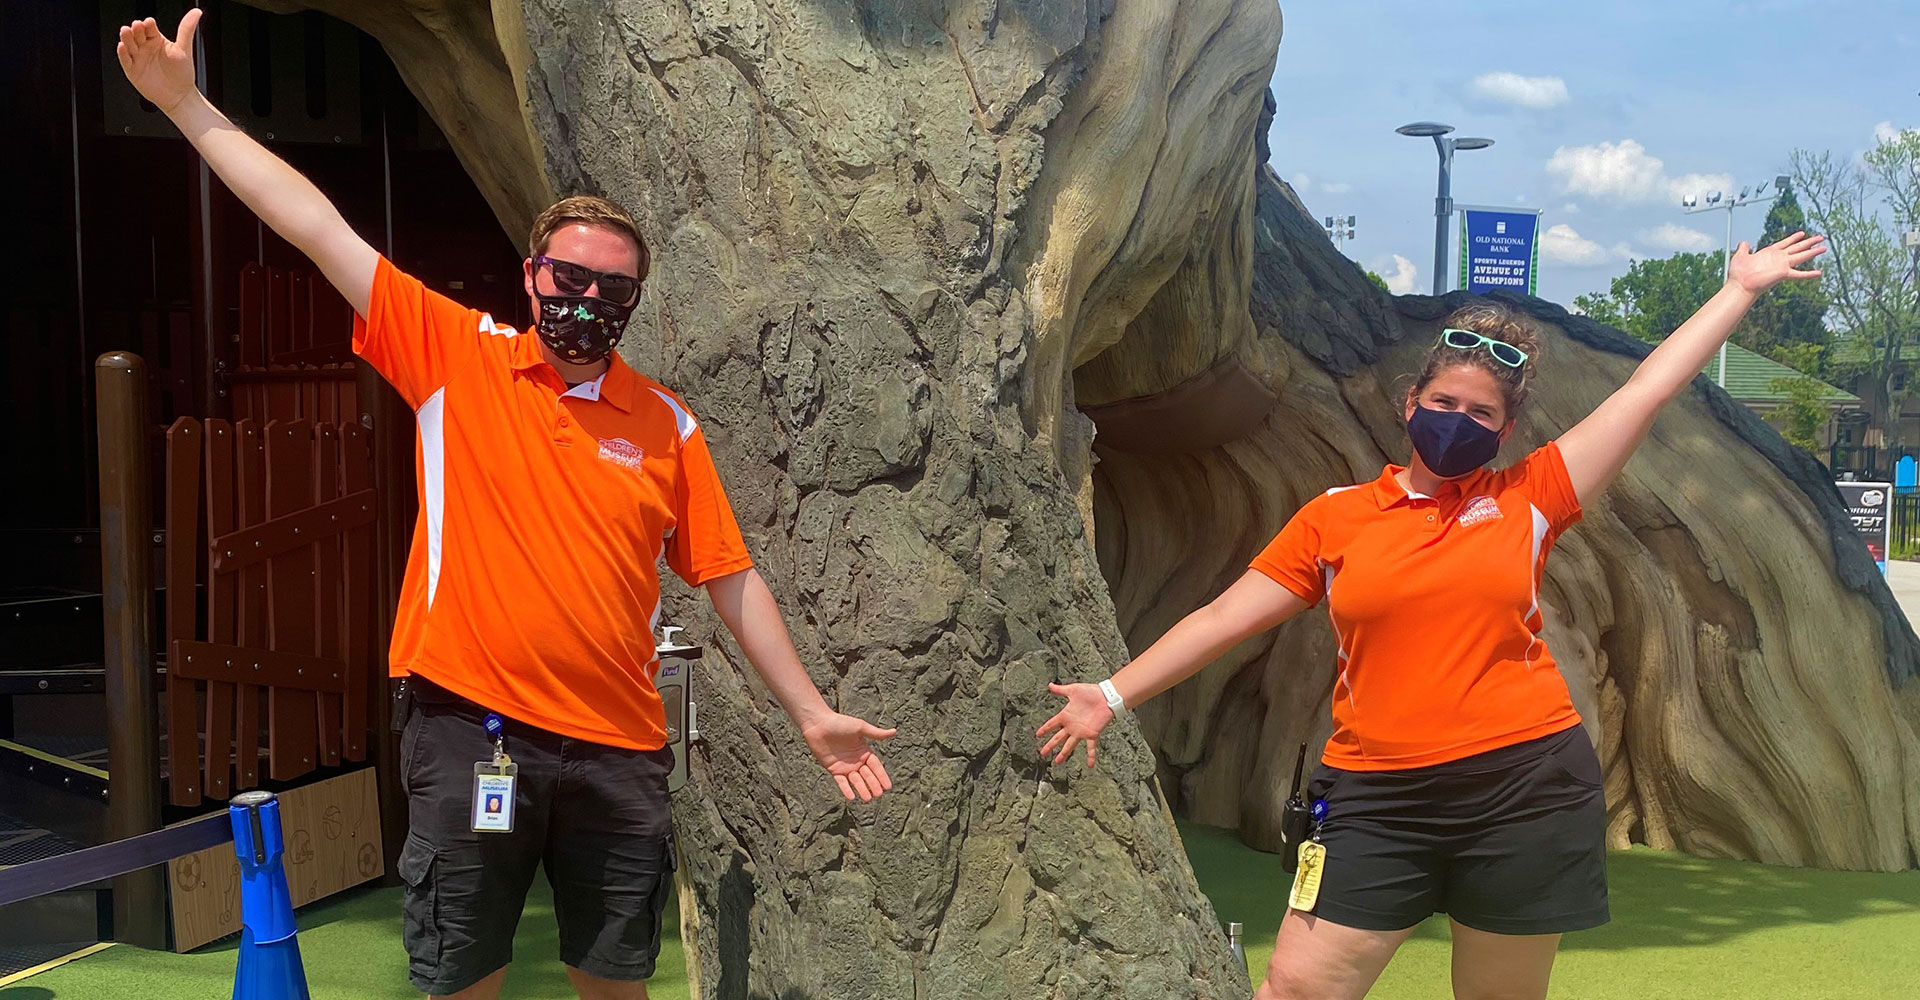 Riley Children's Health Sports Legends Experience coaches Brian and Elizabeth in front of the Tree of Sports at The Children's Museum of Indianapolis